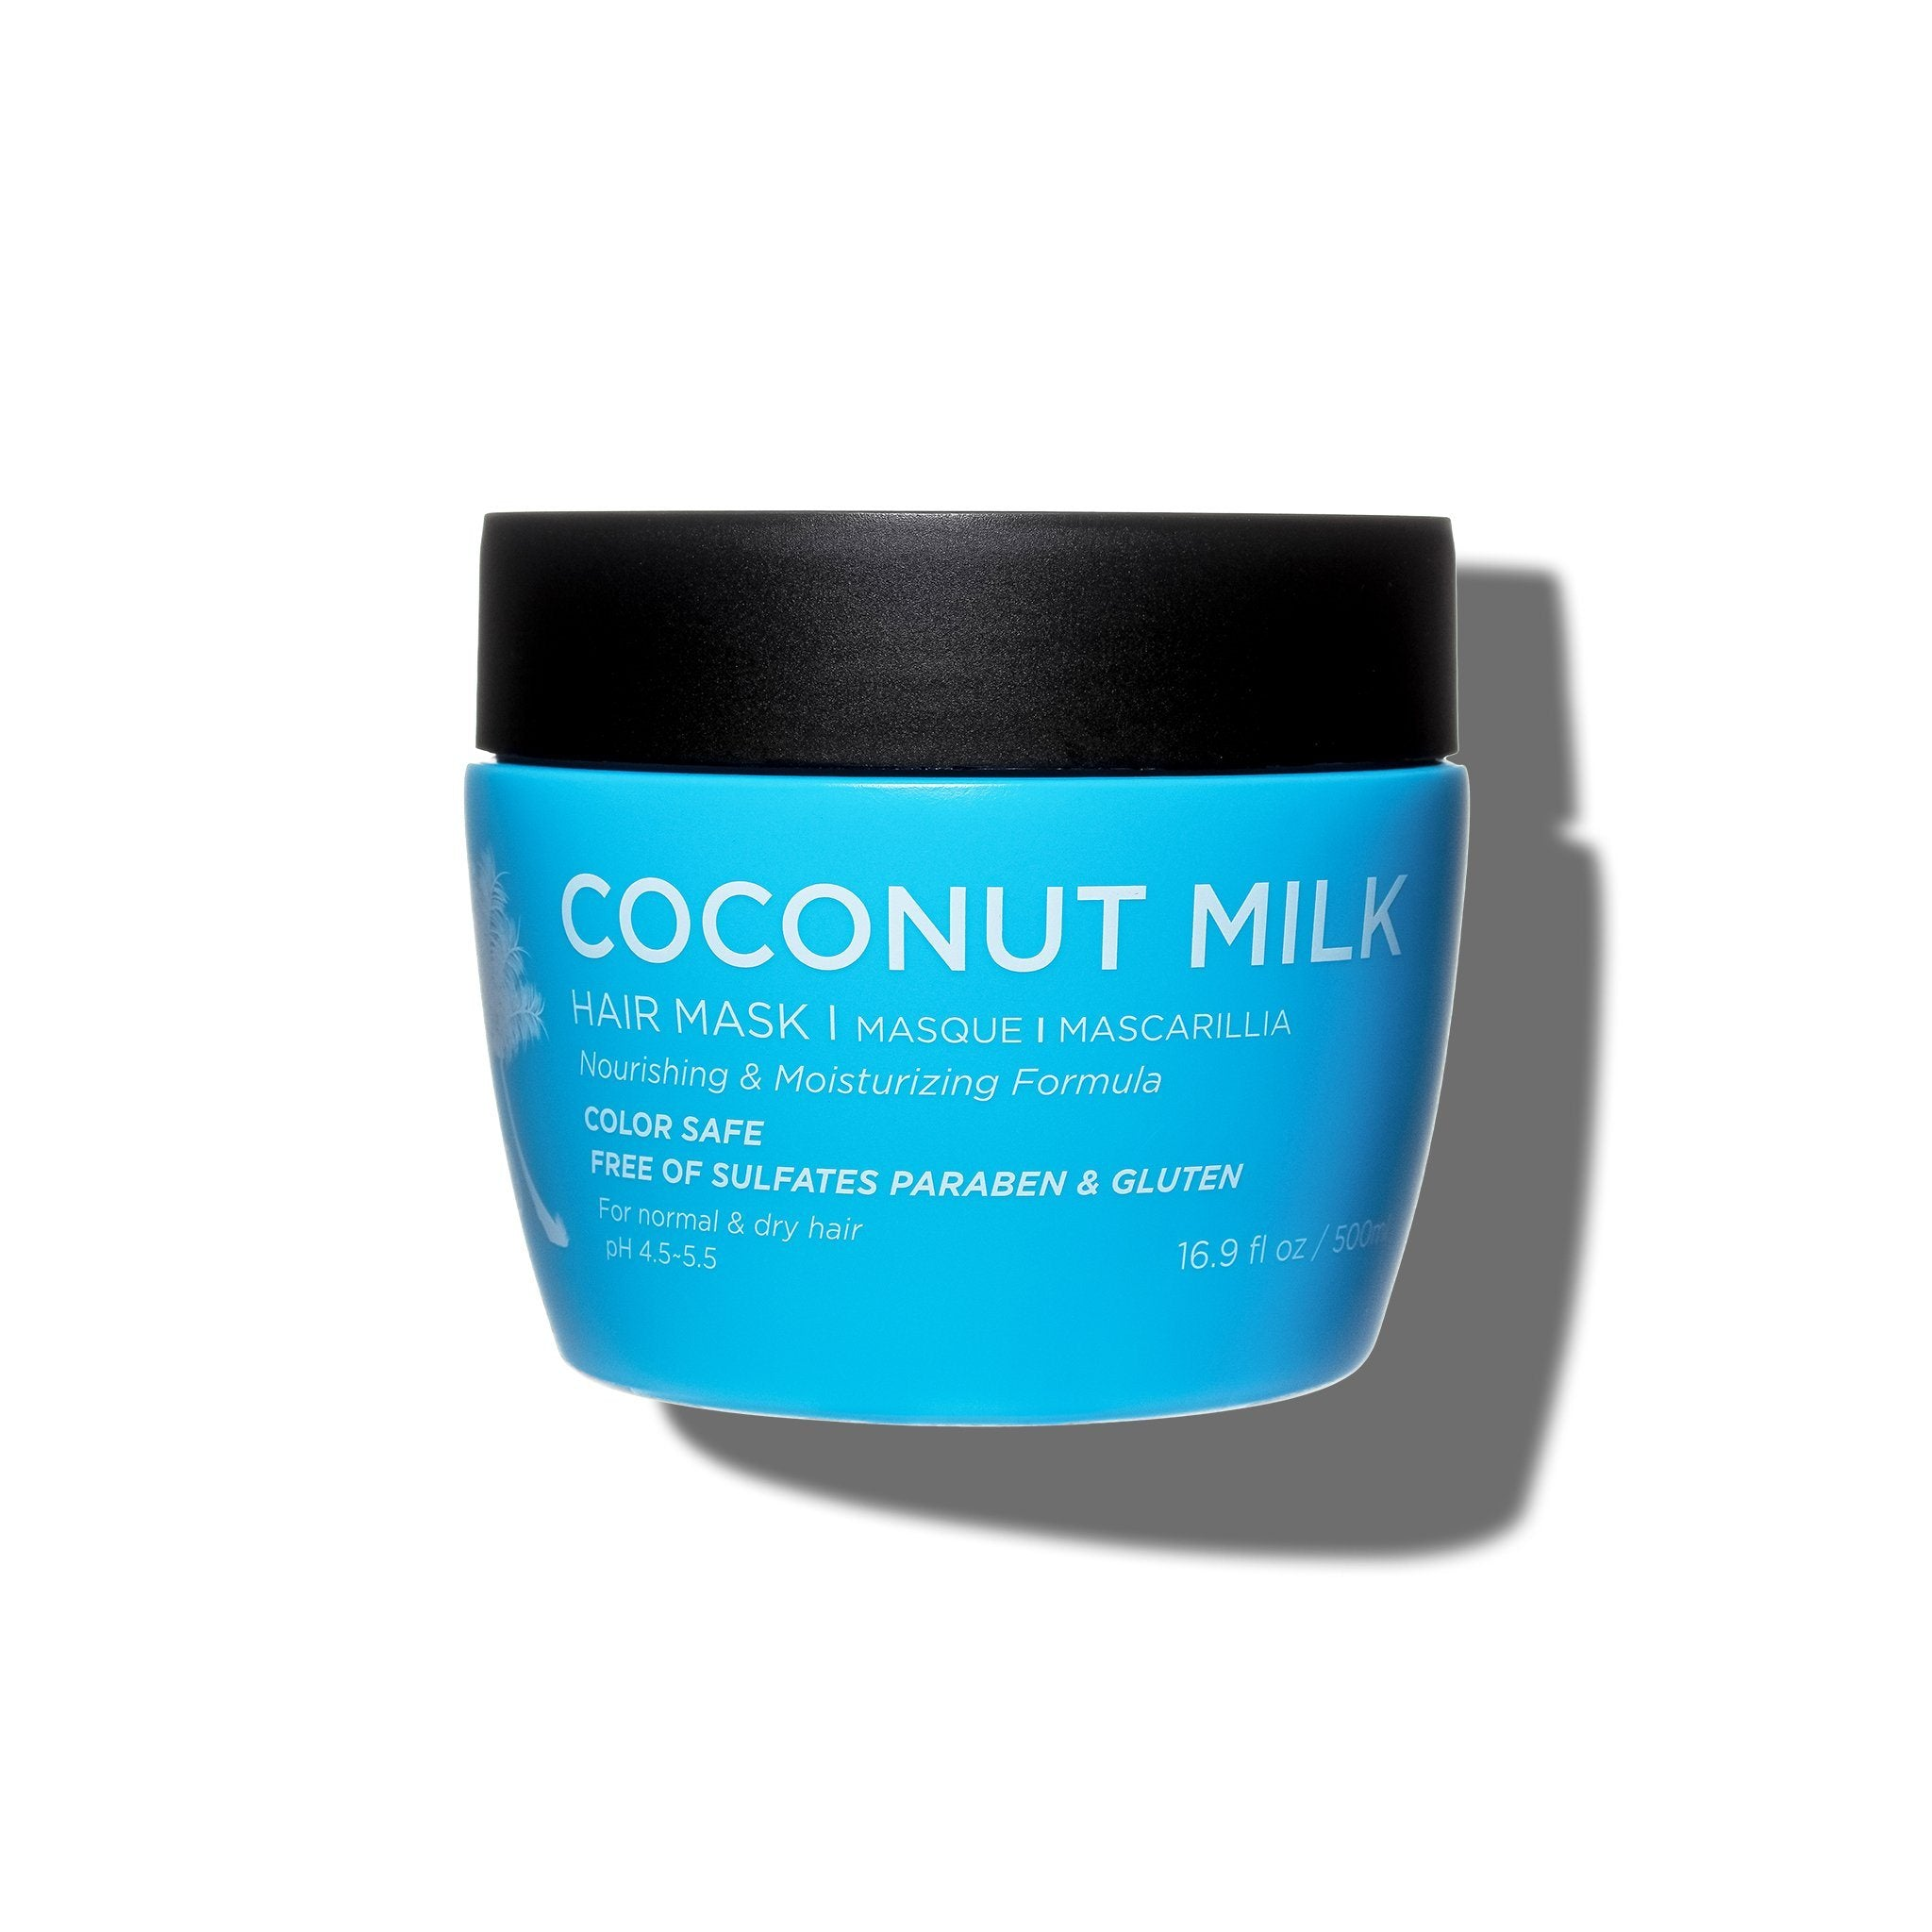 Coconut Milk Hair Mask